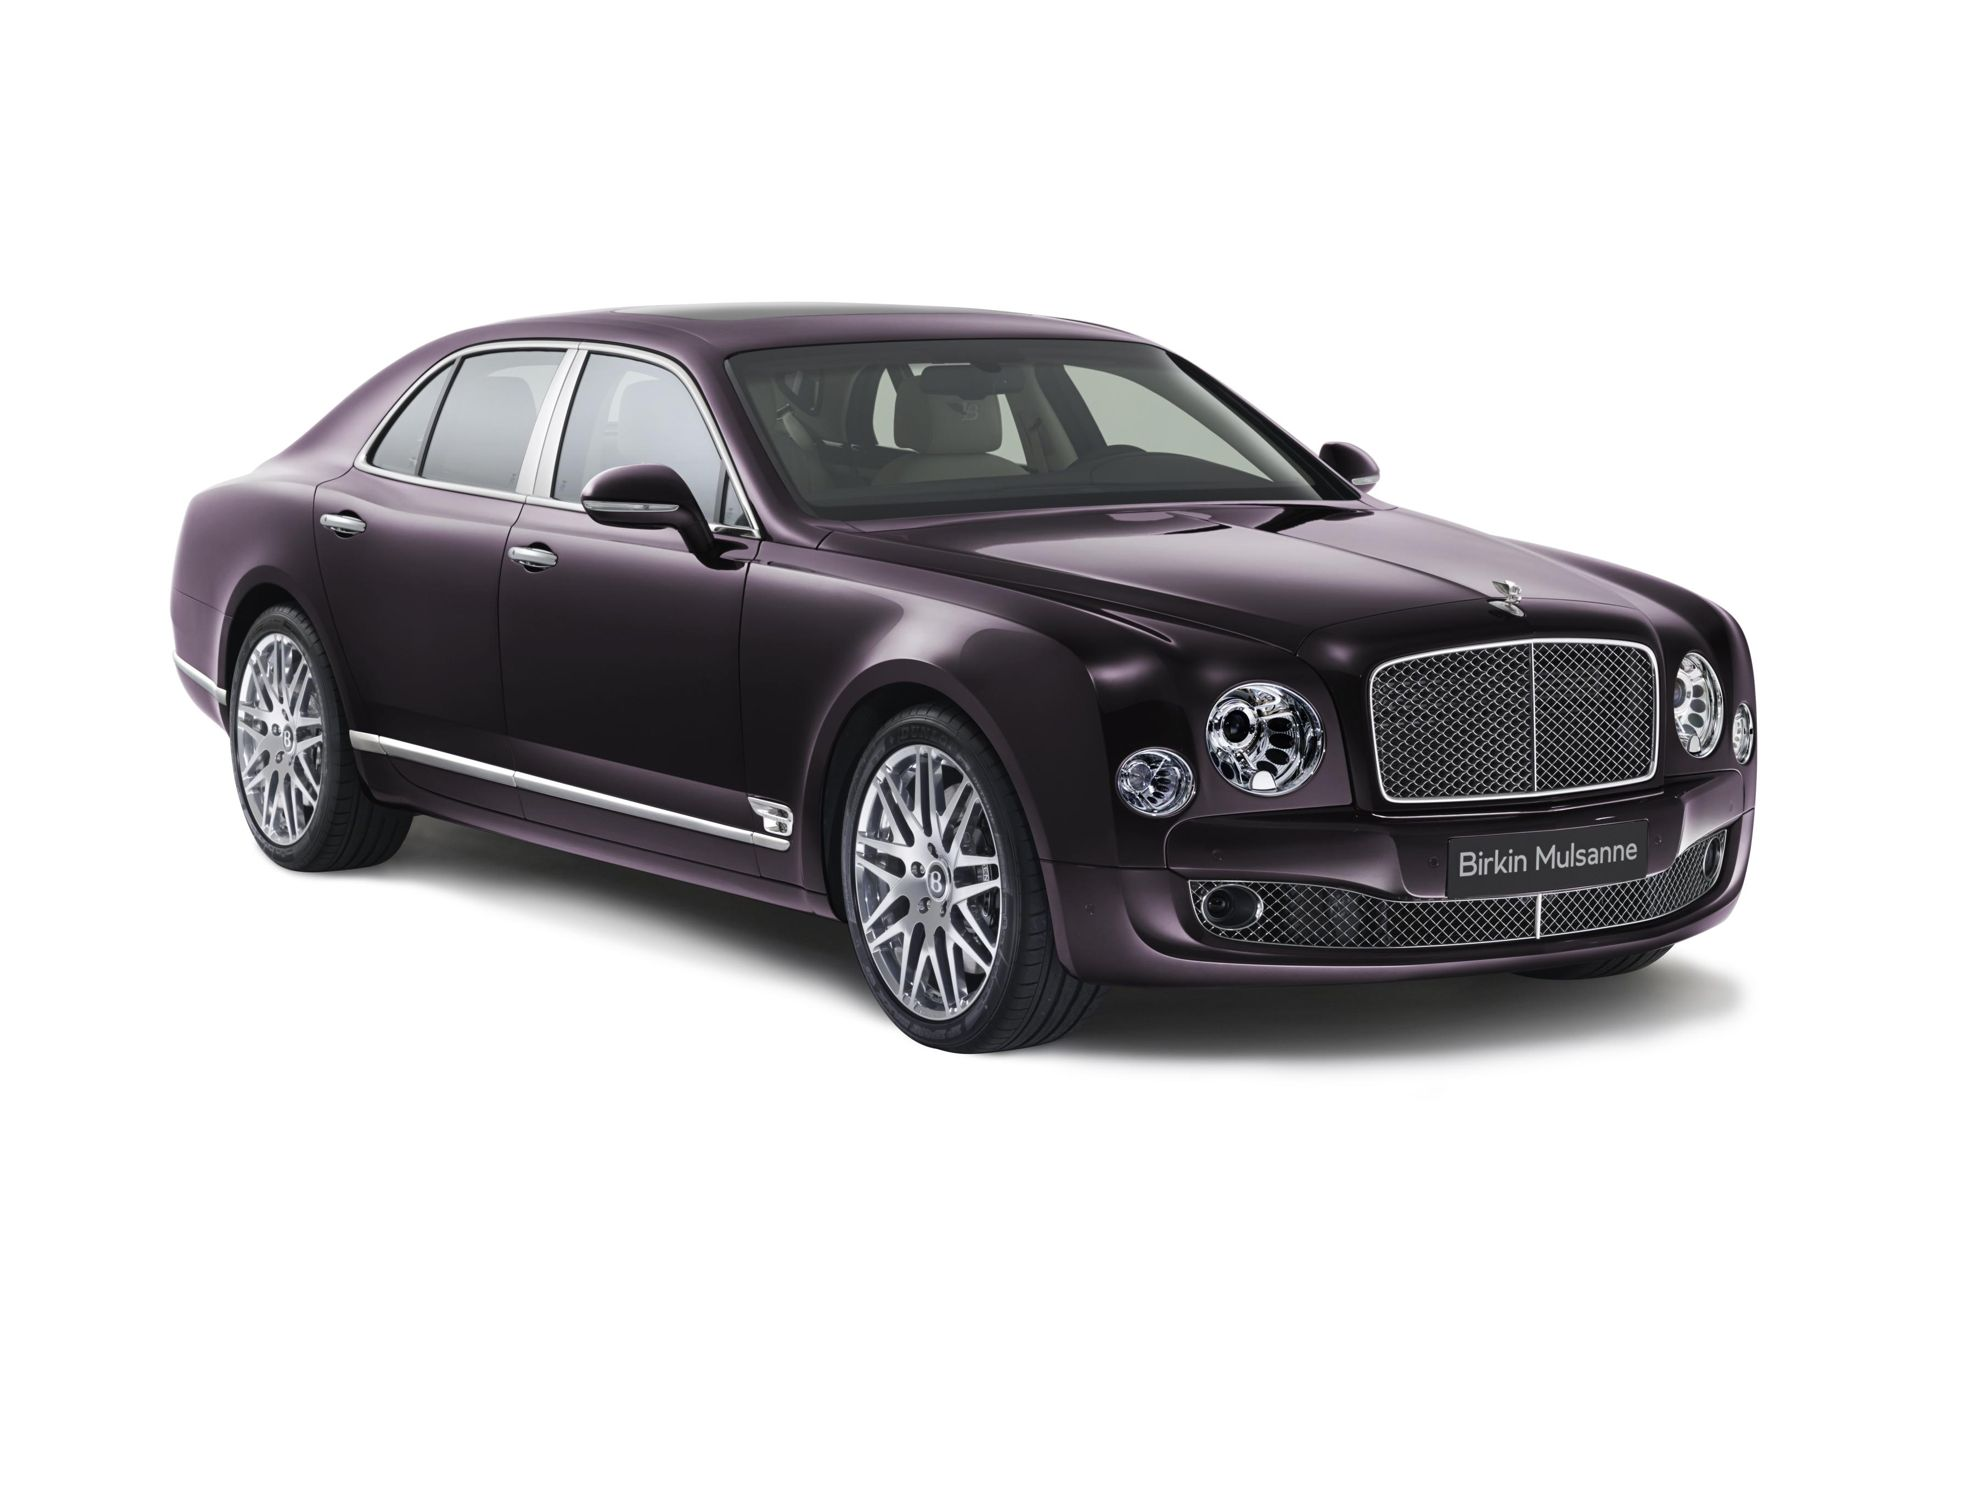 Bentley unveils limited edition birkin mulsanne for Bentley motors limited dream cars